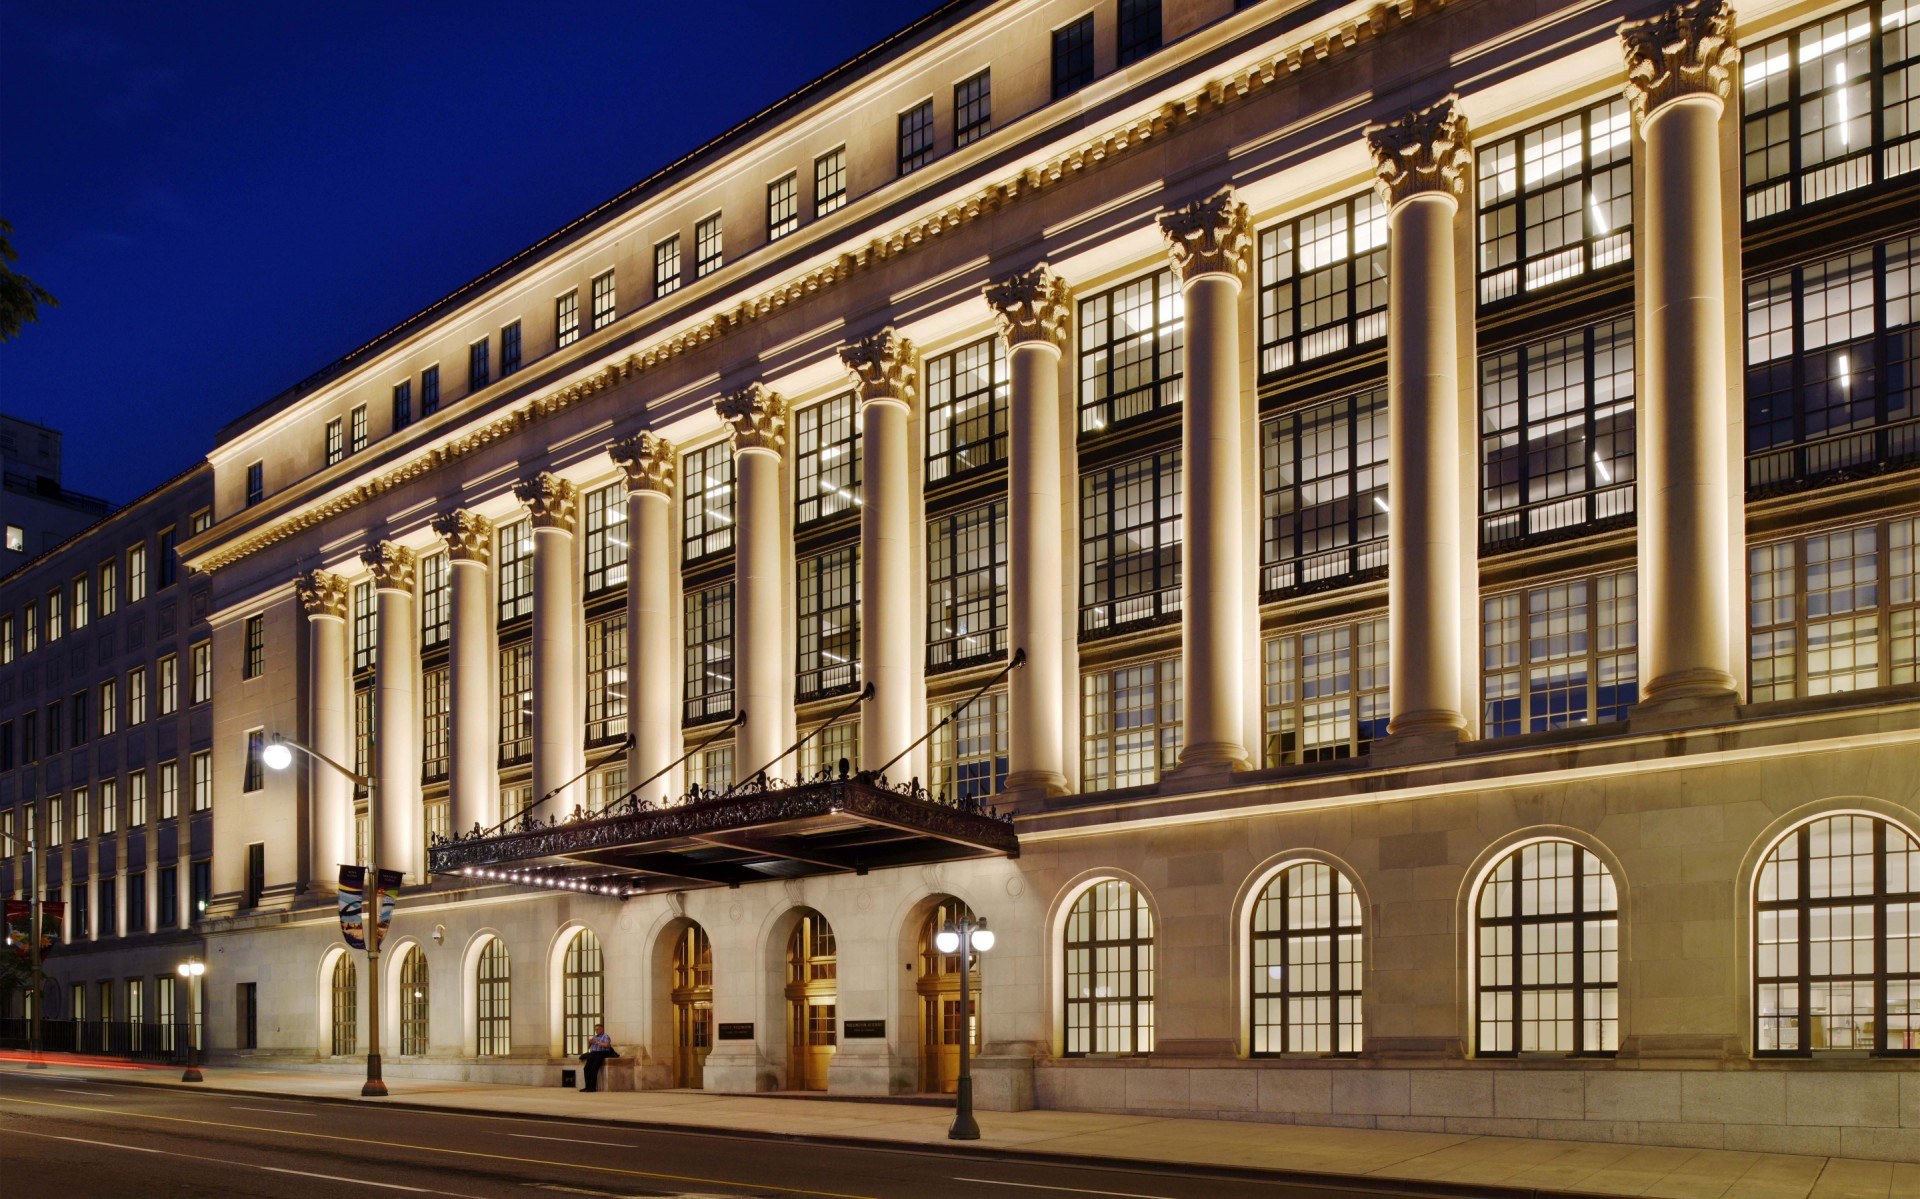 """""""We employed a theatrical approach to lighting with very detailed control systems to avoid flooding the building with light"""" states Francois Roupinian. – Gordon King"""